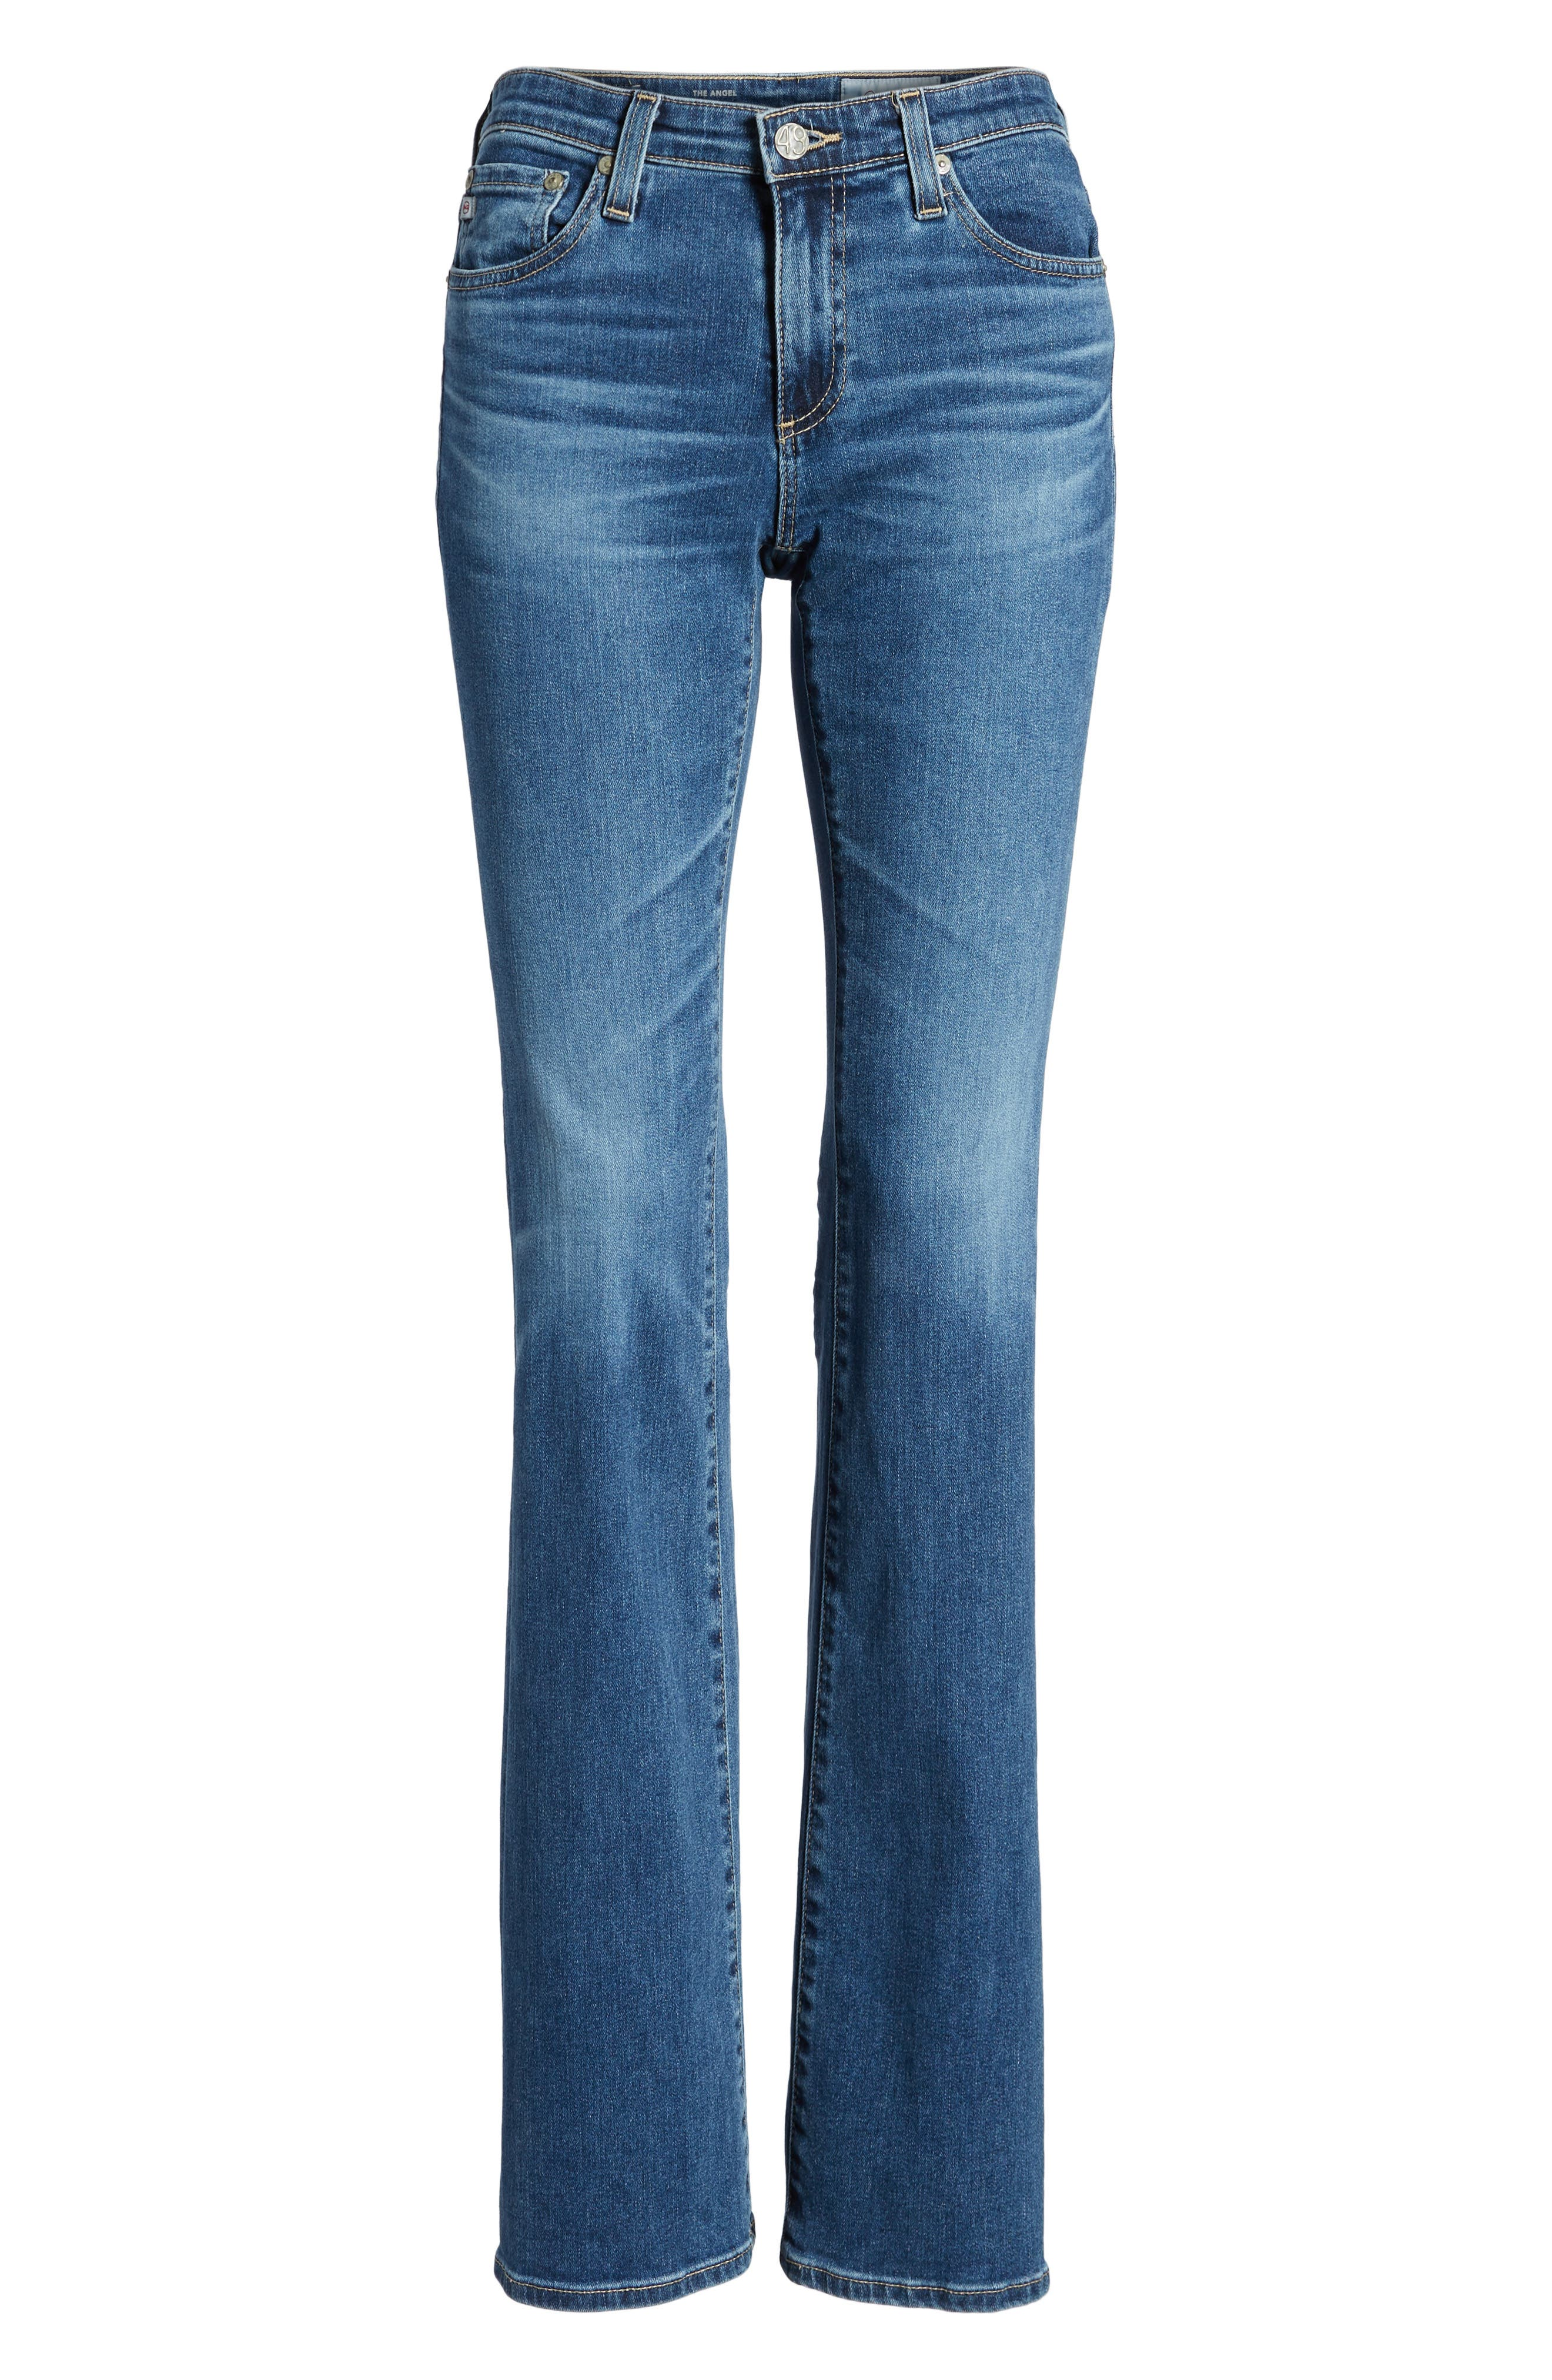 Angel Flare Jeans,                             Alternate thumbnail 7, color,                             10 Years Cambria